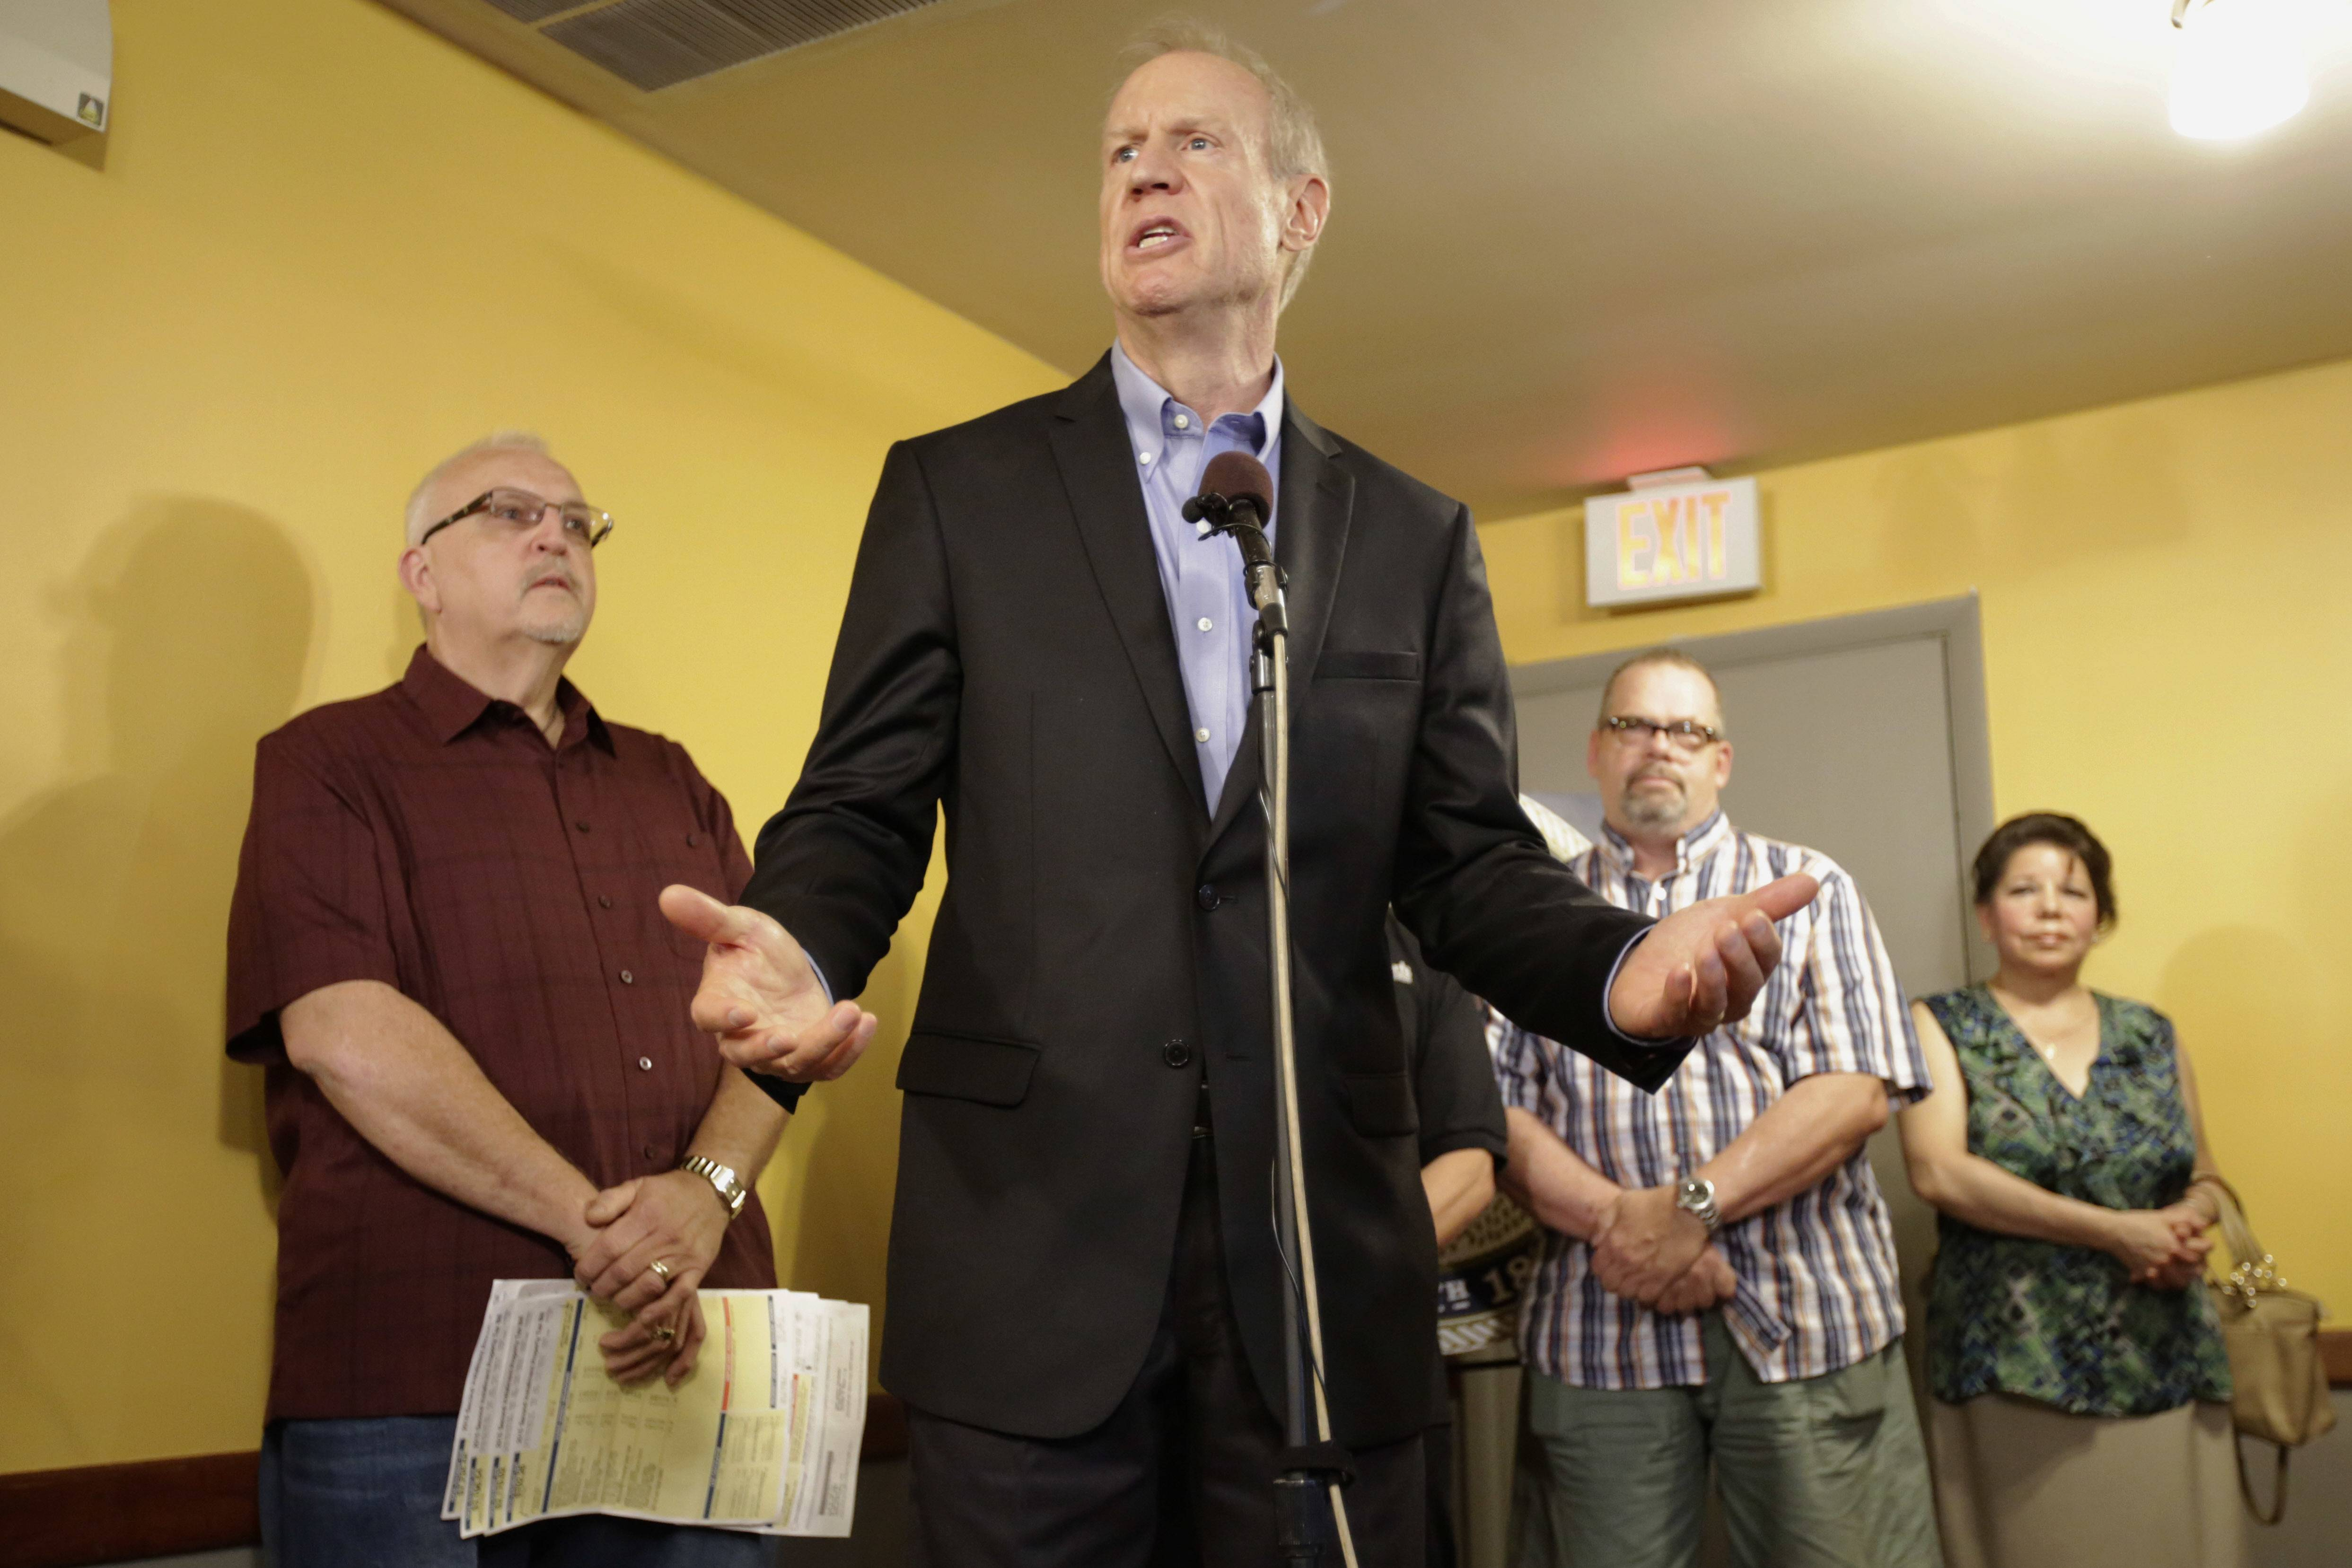 Illinois Gov. Bruce Rauner, speaking at a news conference Wednesday in Chicago, will find out today whether the state House will override his veto of an income tax increase.